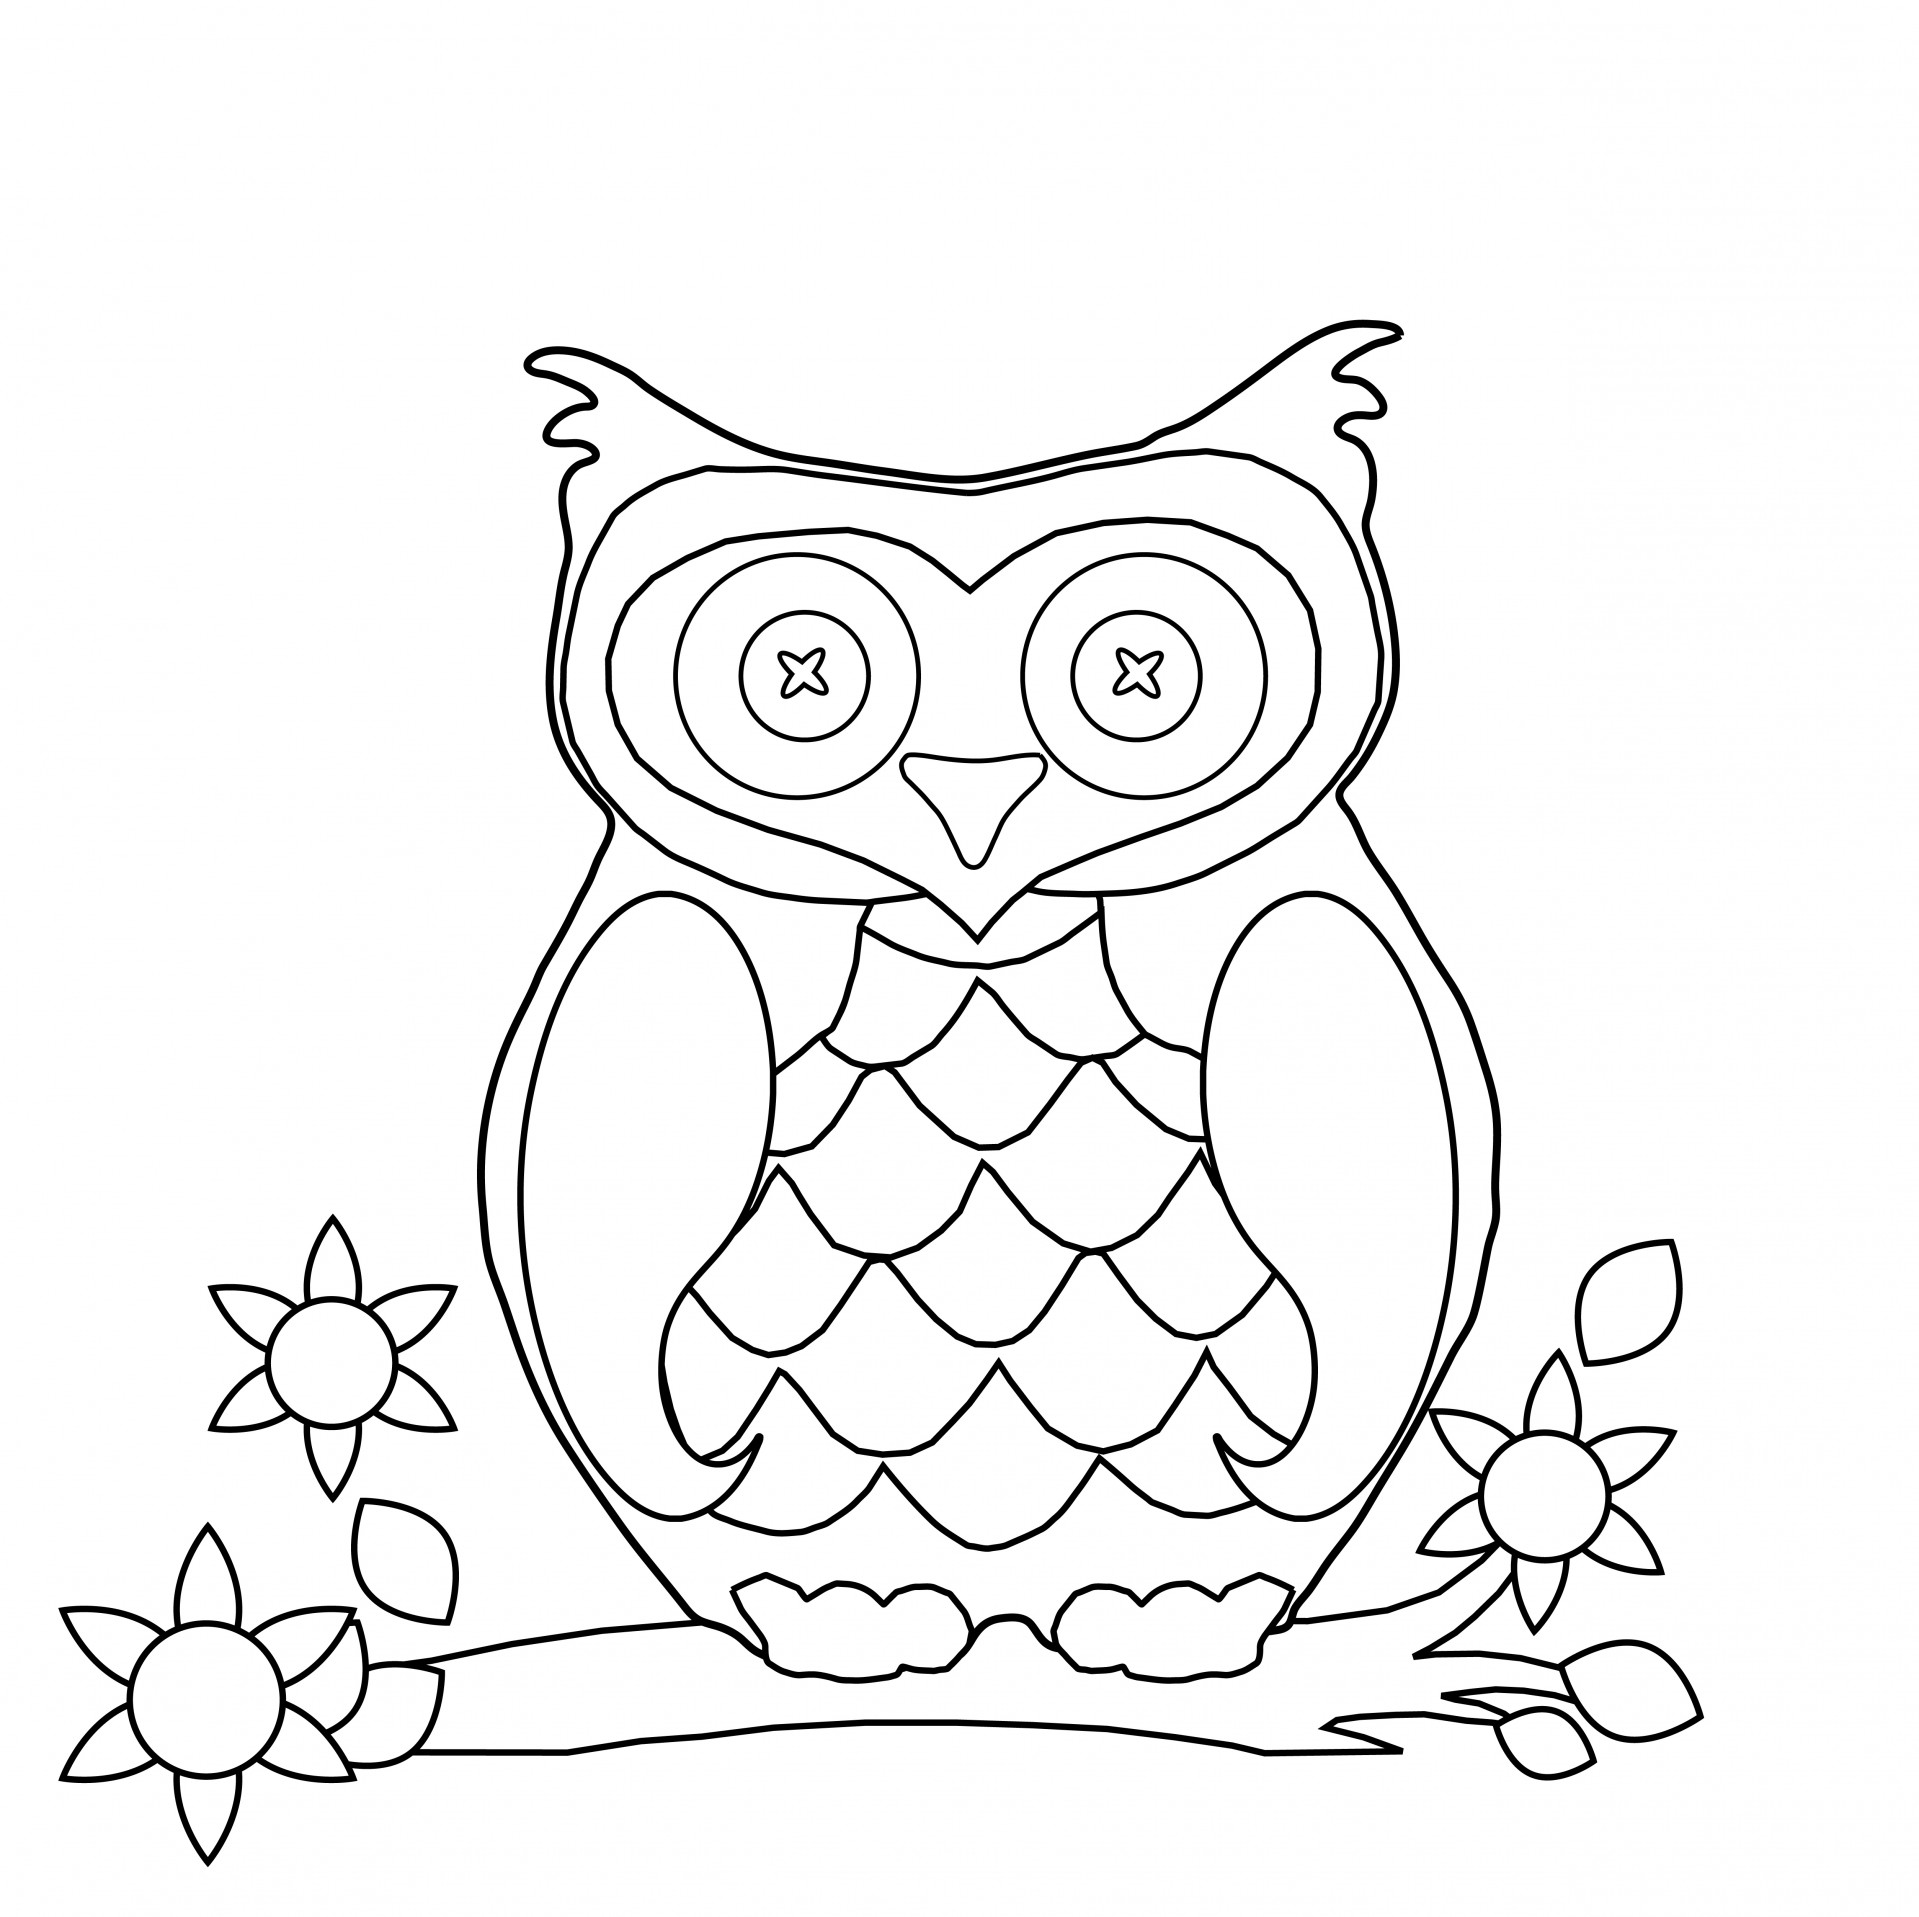 Make Any Picture A Coloring Page With Ipiccy Ipiccy Photo Editor